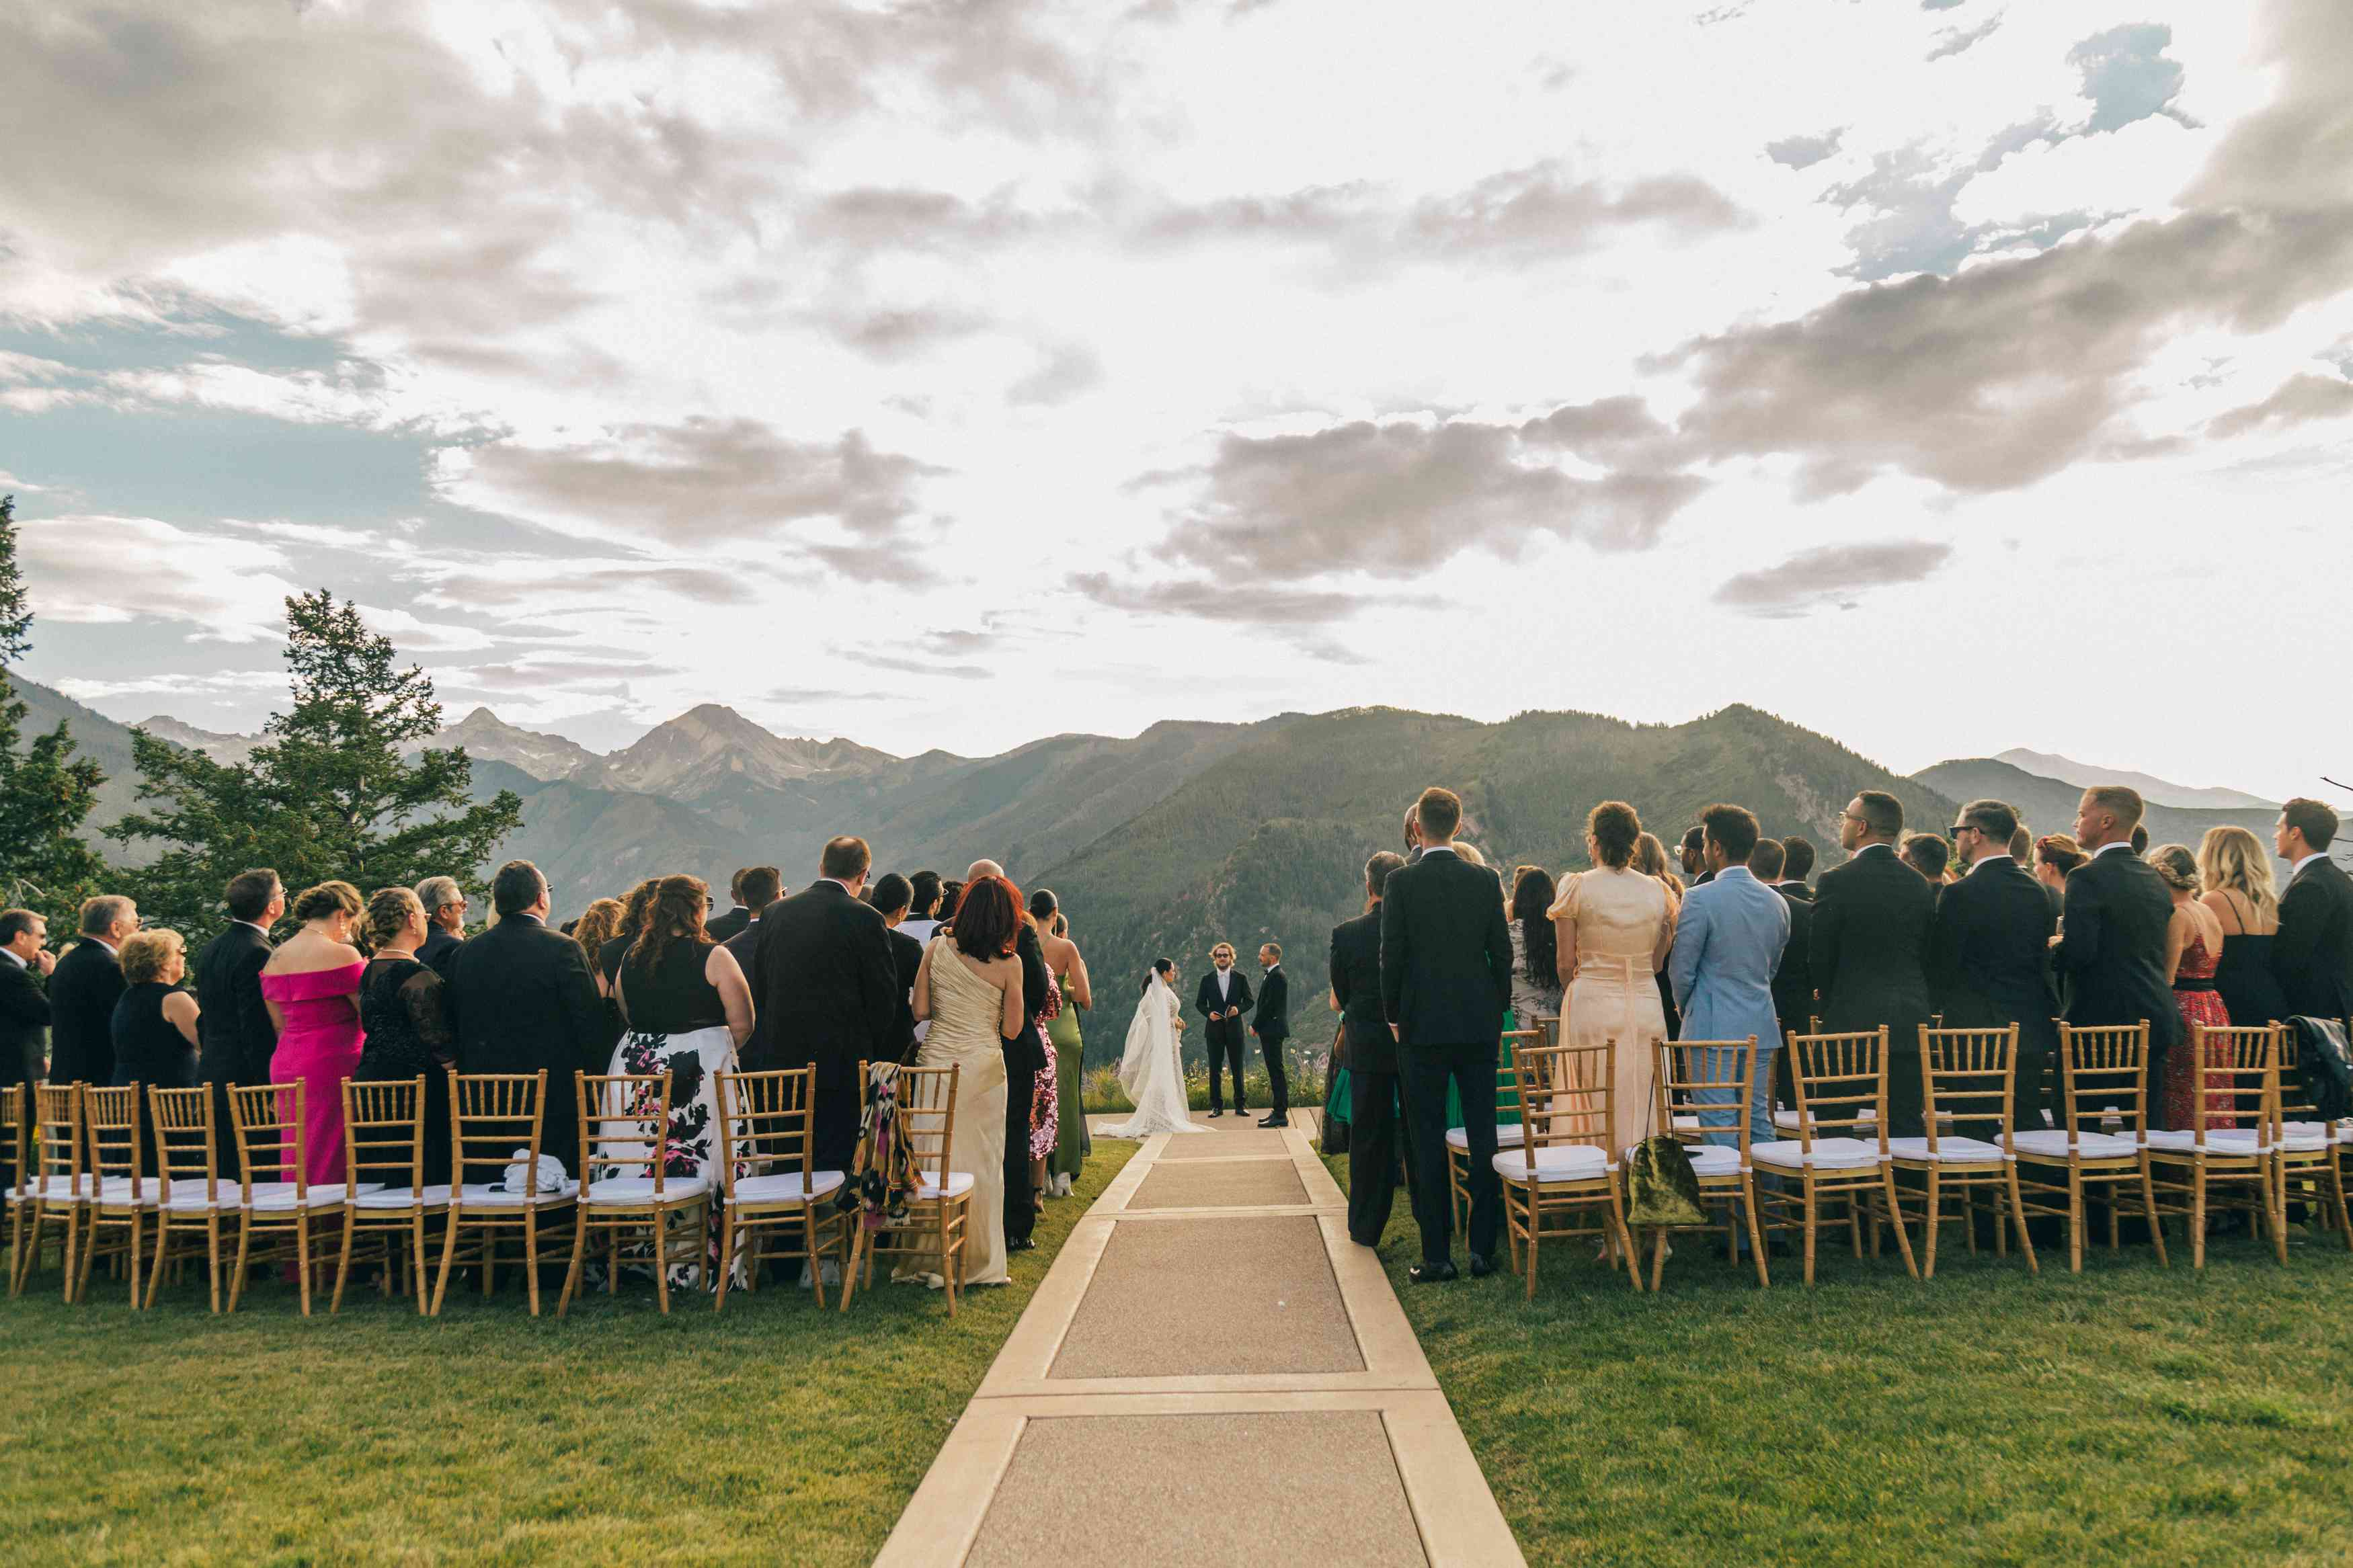 <p>Guests at wedding ceremony</p><br><br>